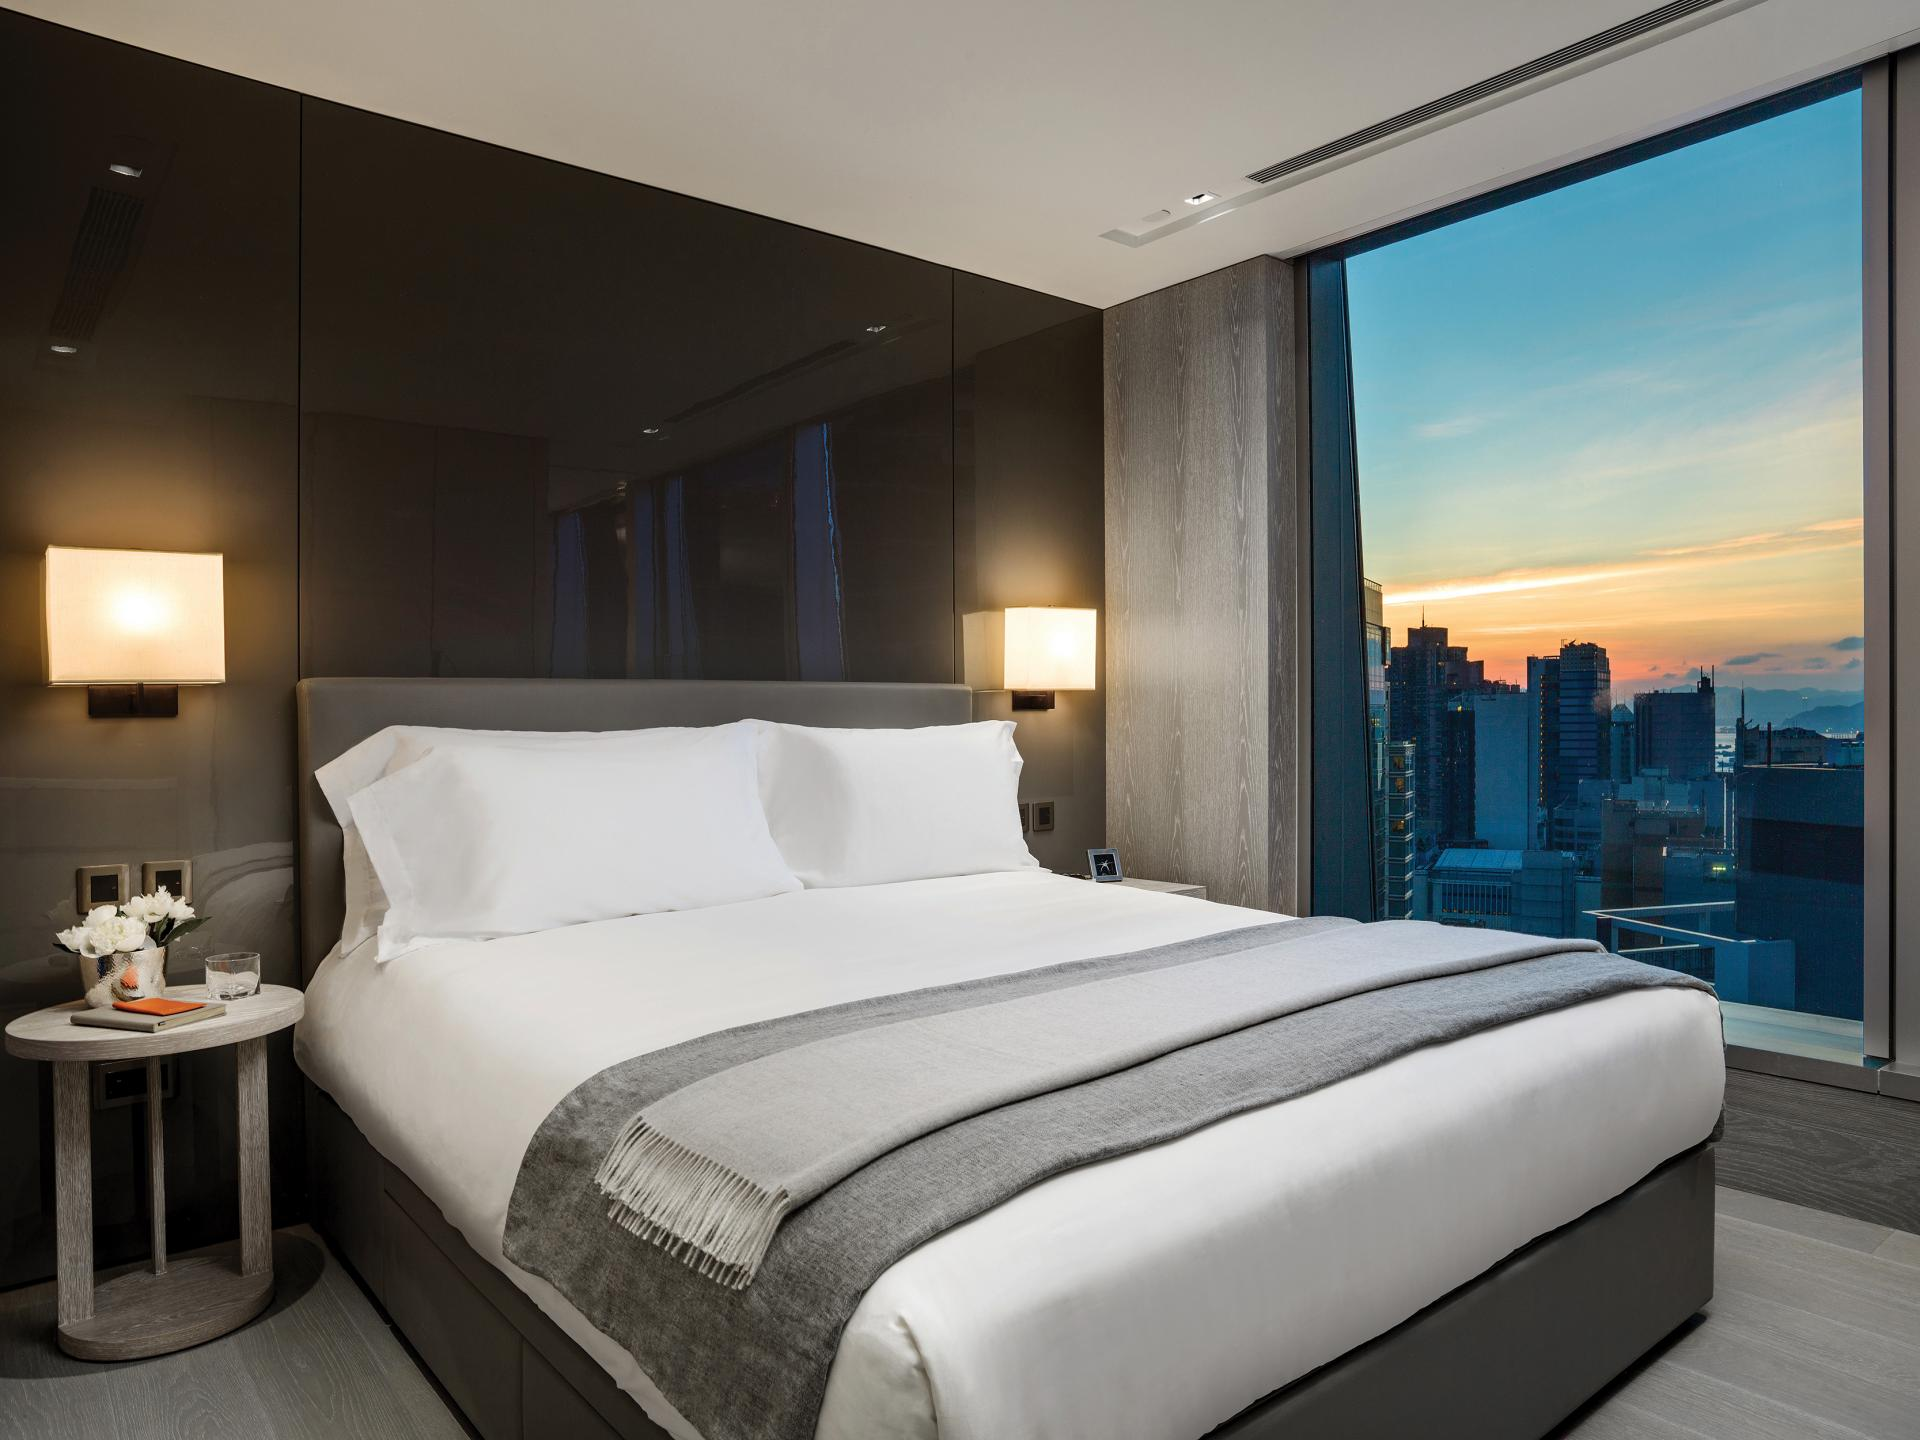 Bedroom at Queens Road Apartments, Sheung Wan, Hong Kong